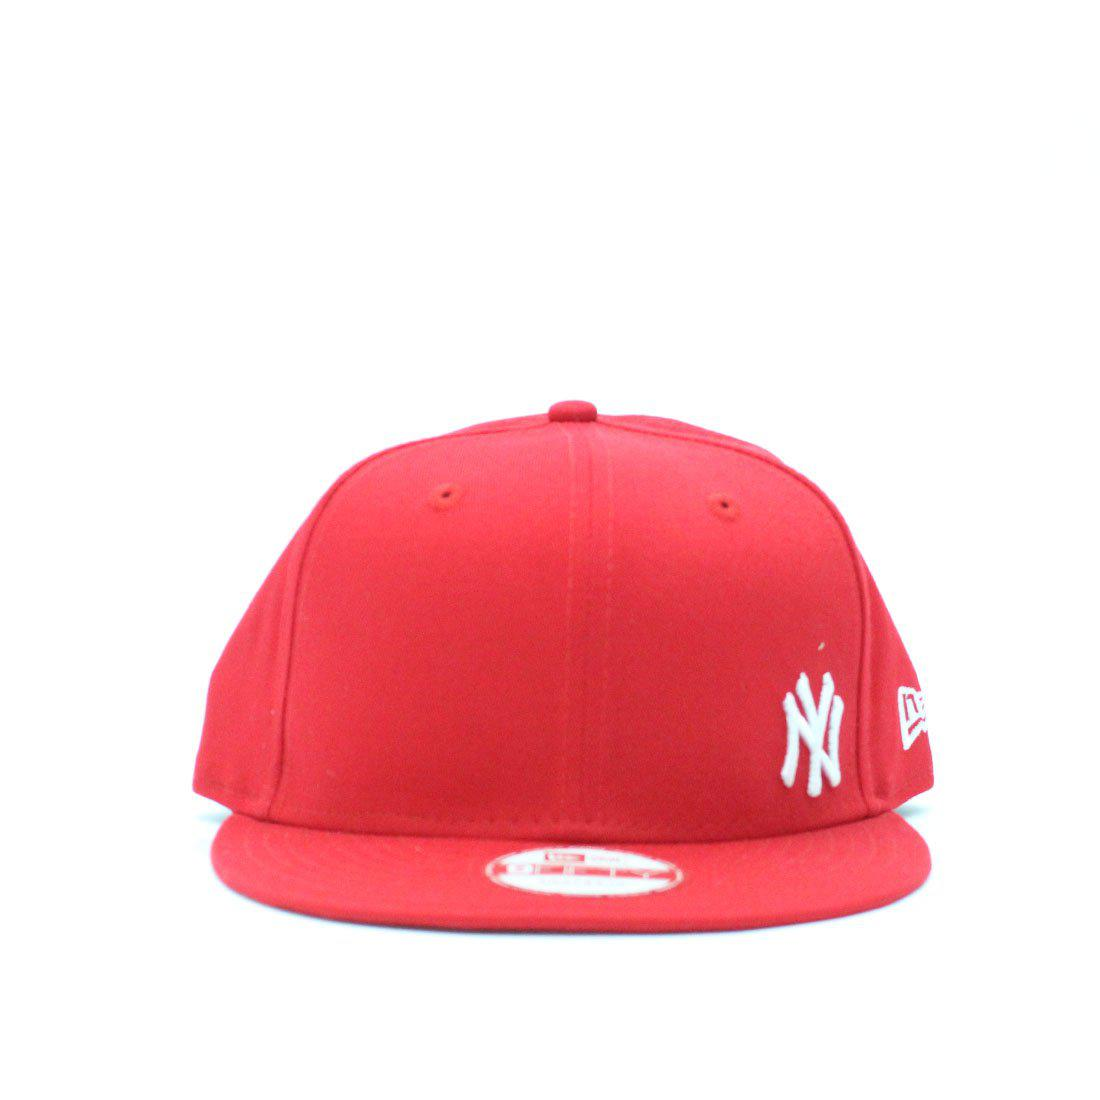 brand new 83372 df987 Lyst - Ktz Flawless Ny Yankees Cap Red in Red for Men